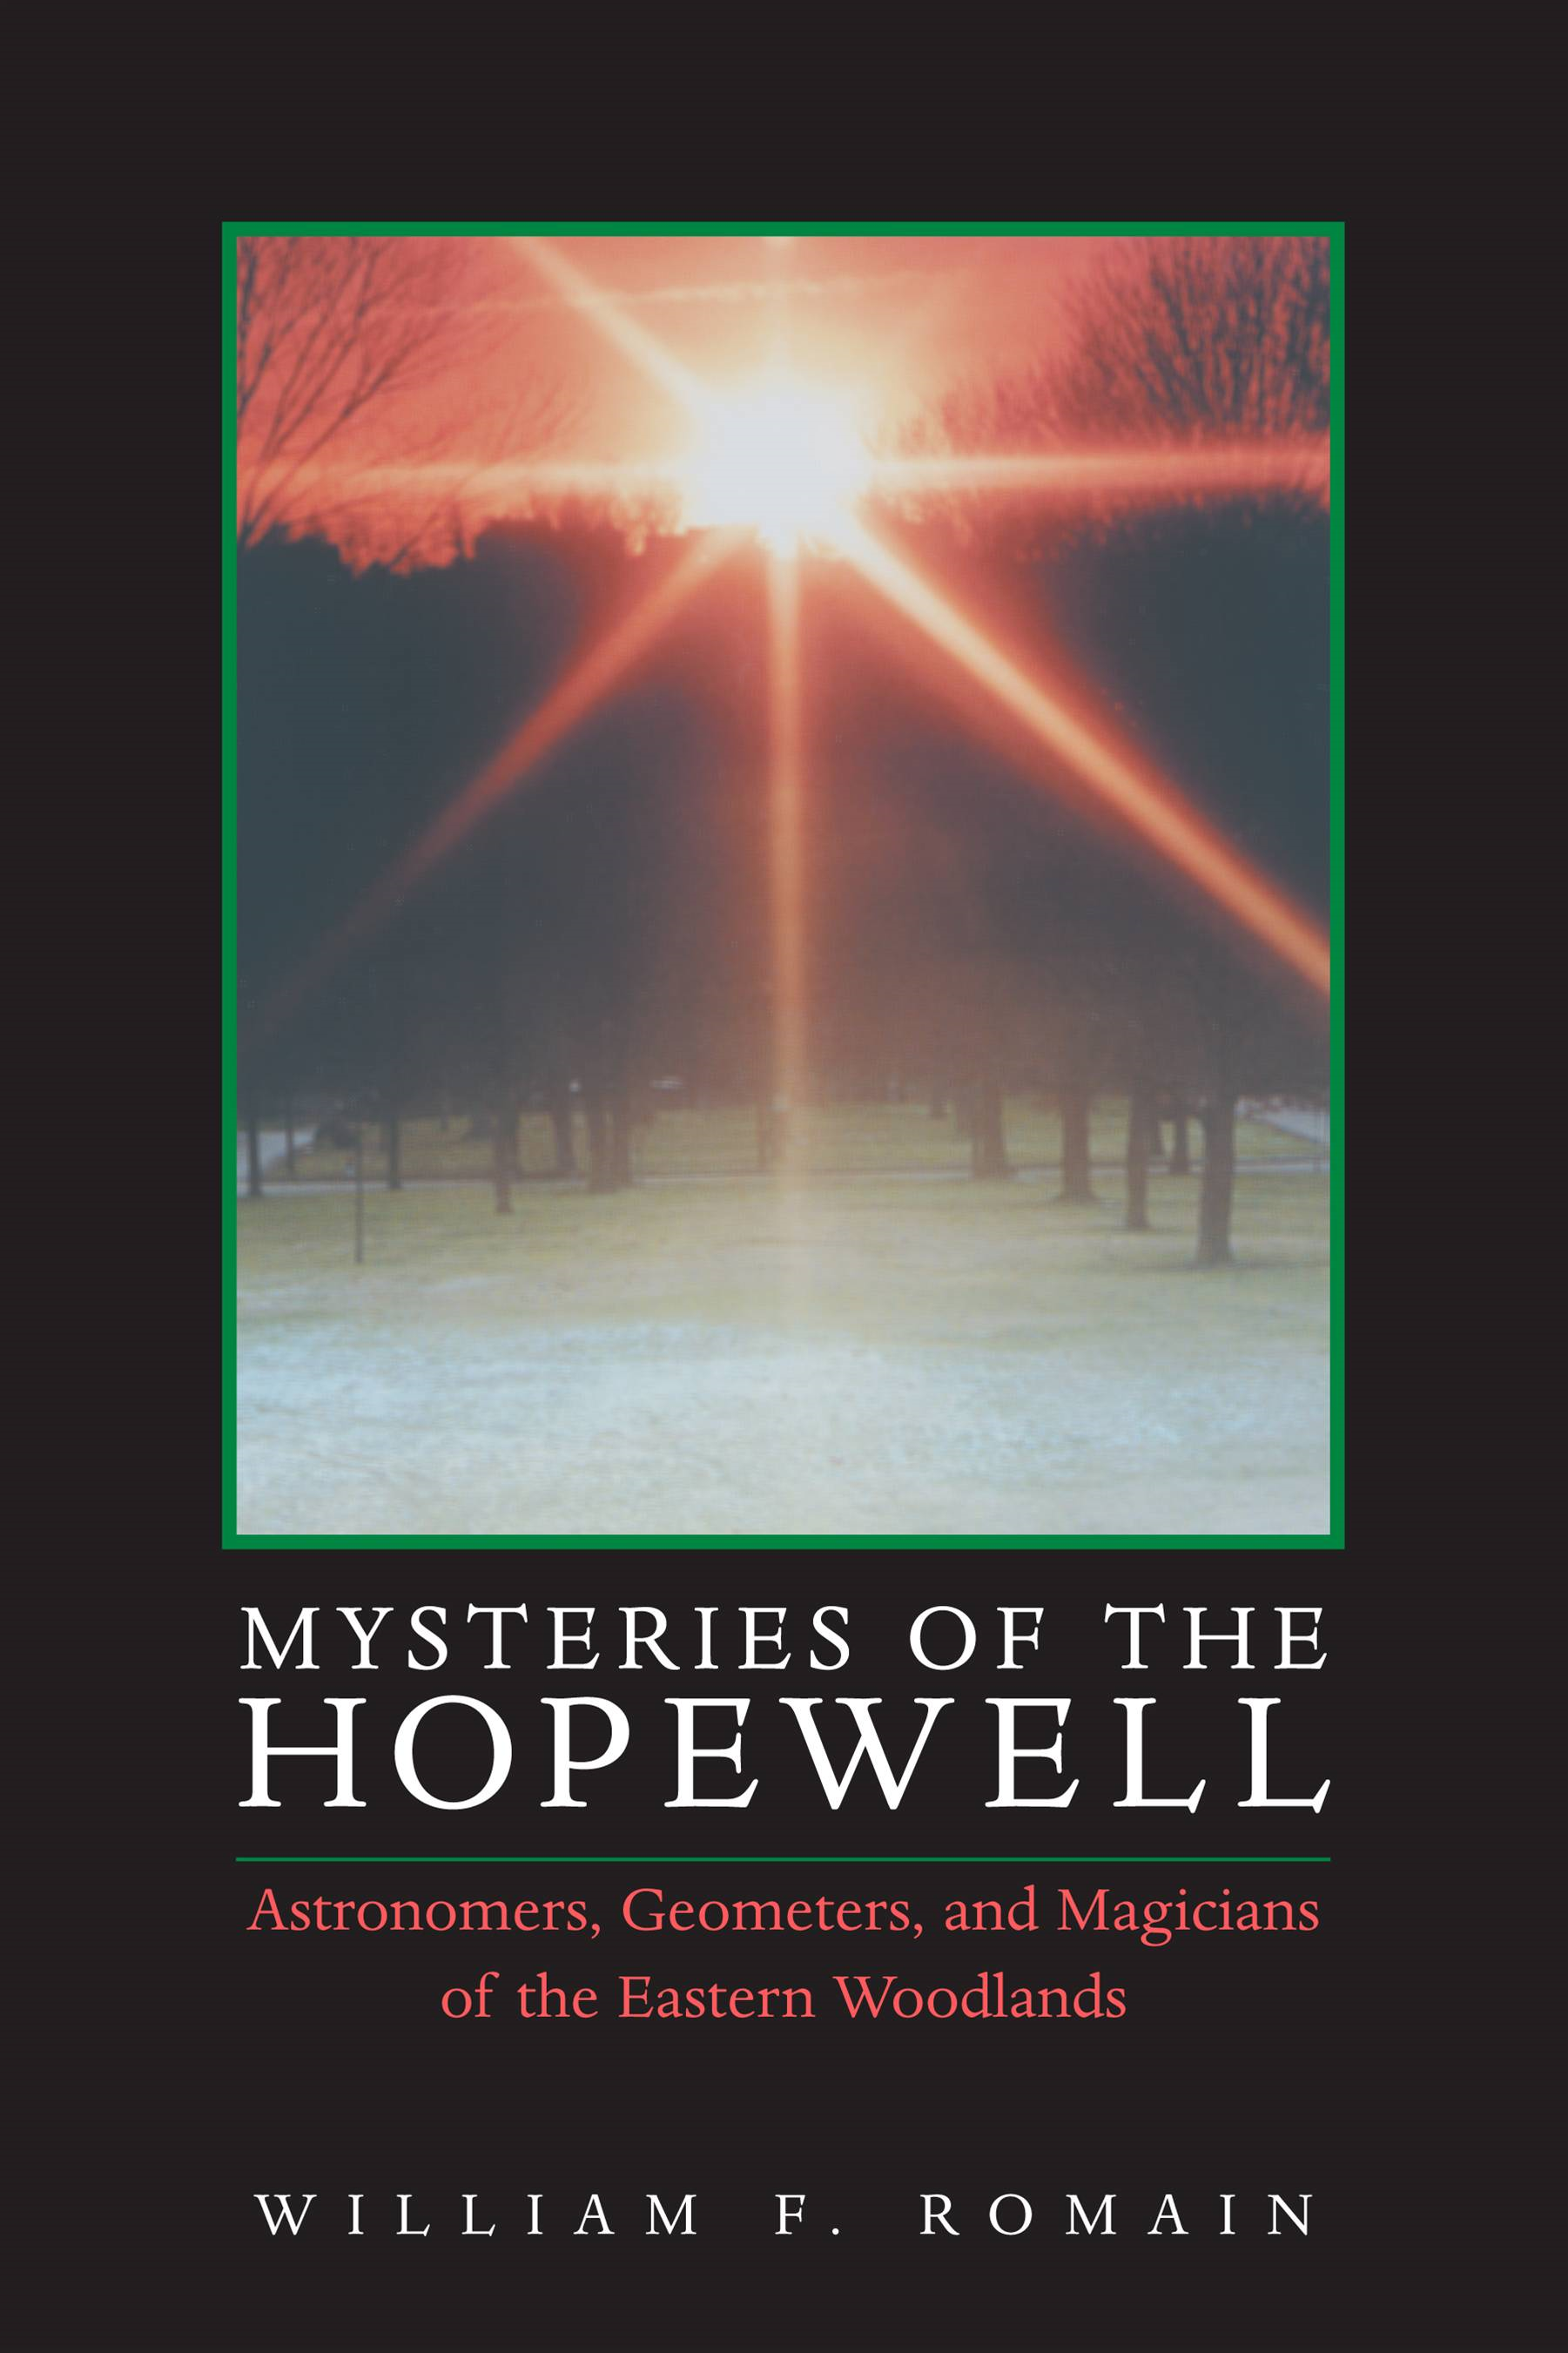 Mysteries of the Hopewell: Astronomers, Geometers, and Magicians of the Eastern Woodlands